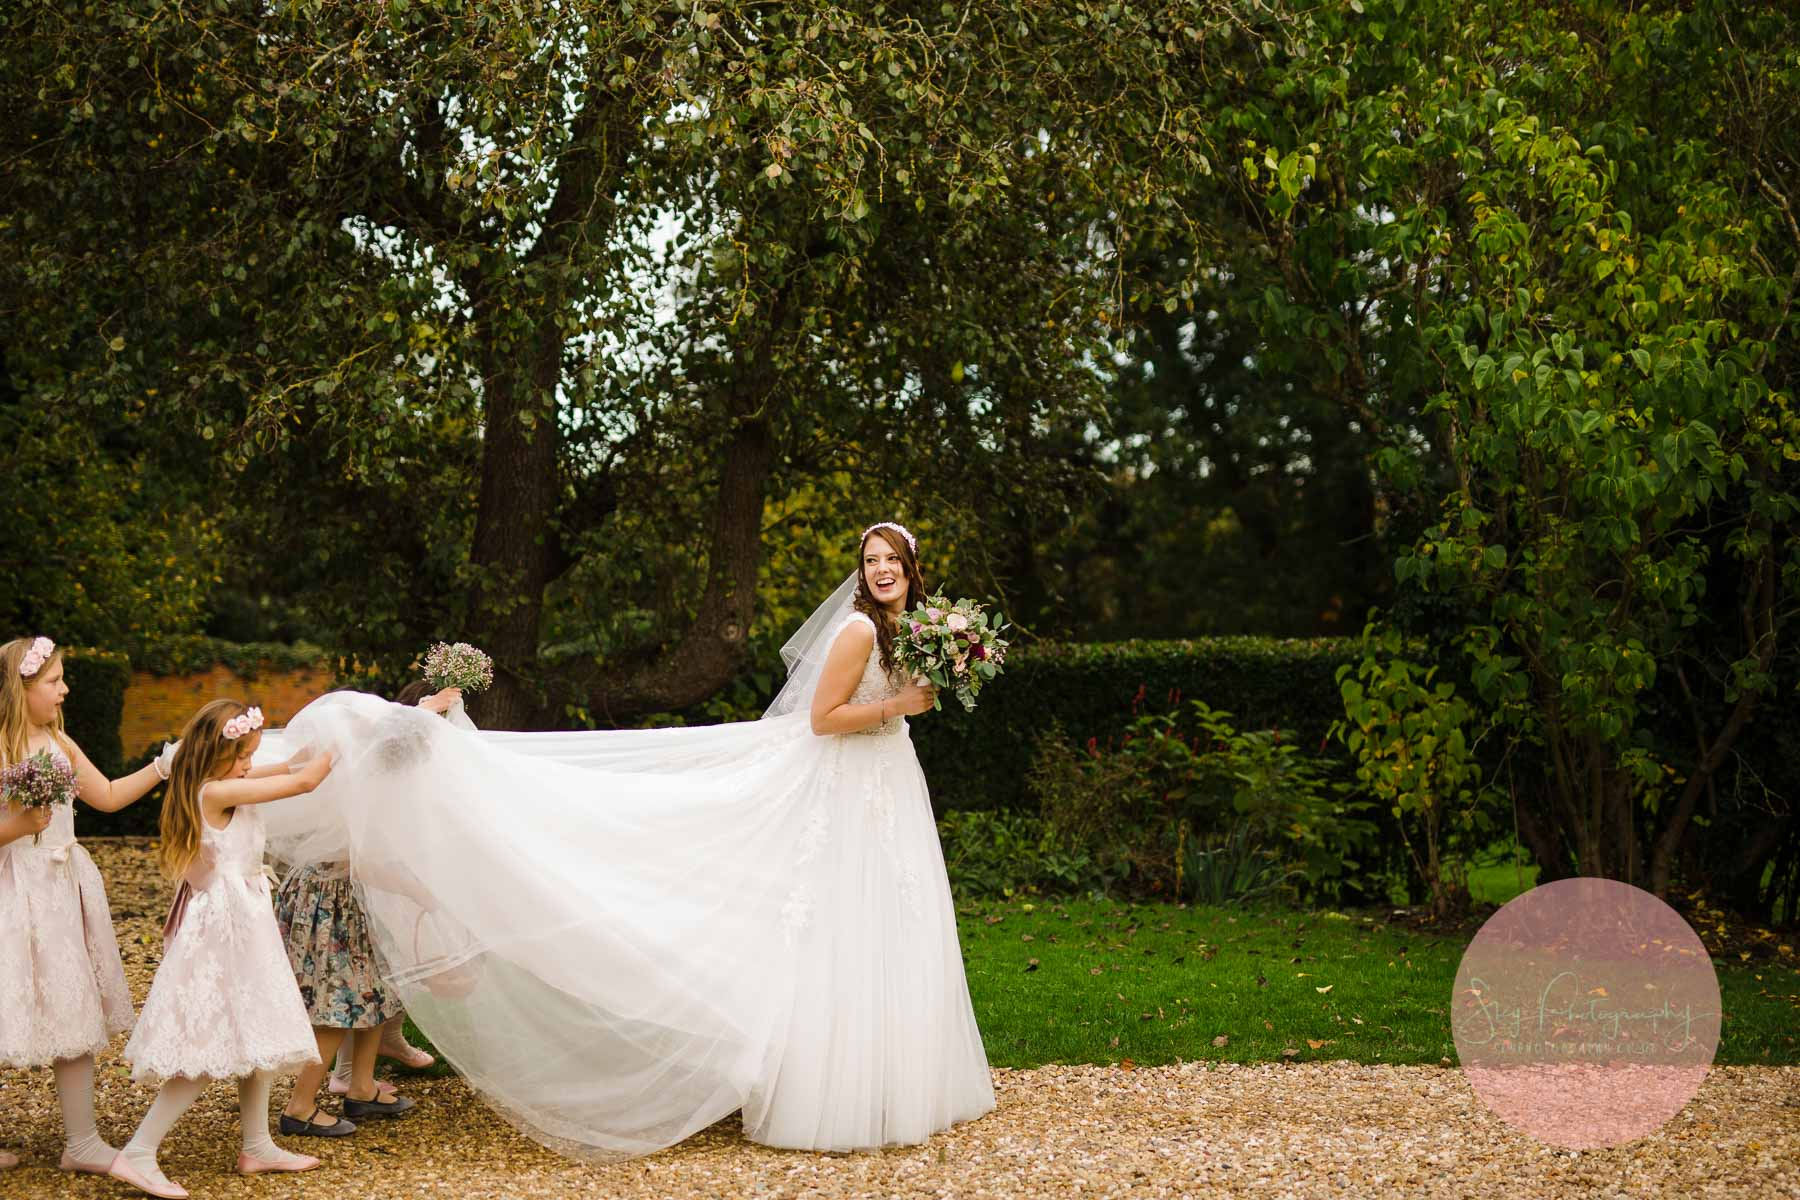 flower grils and bridesmaids carrying brides dress